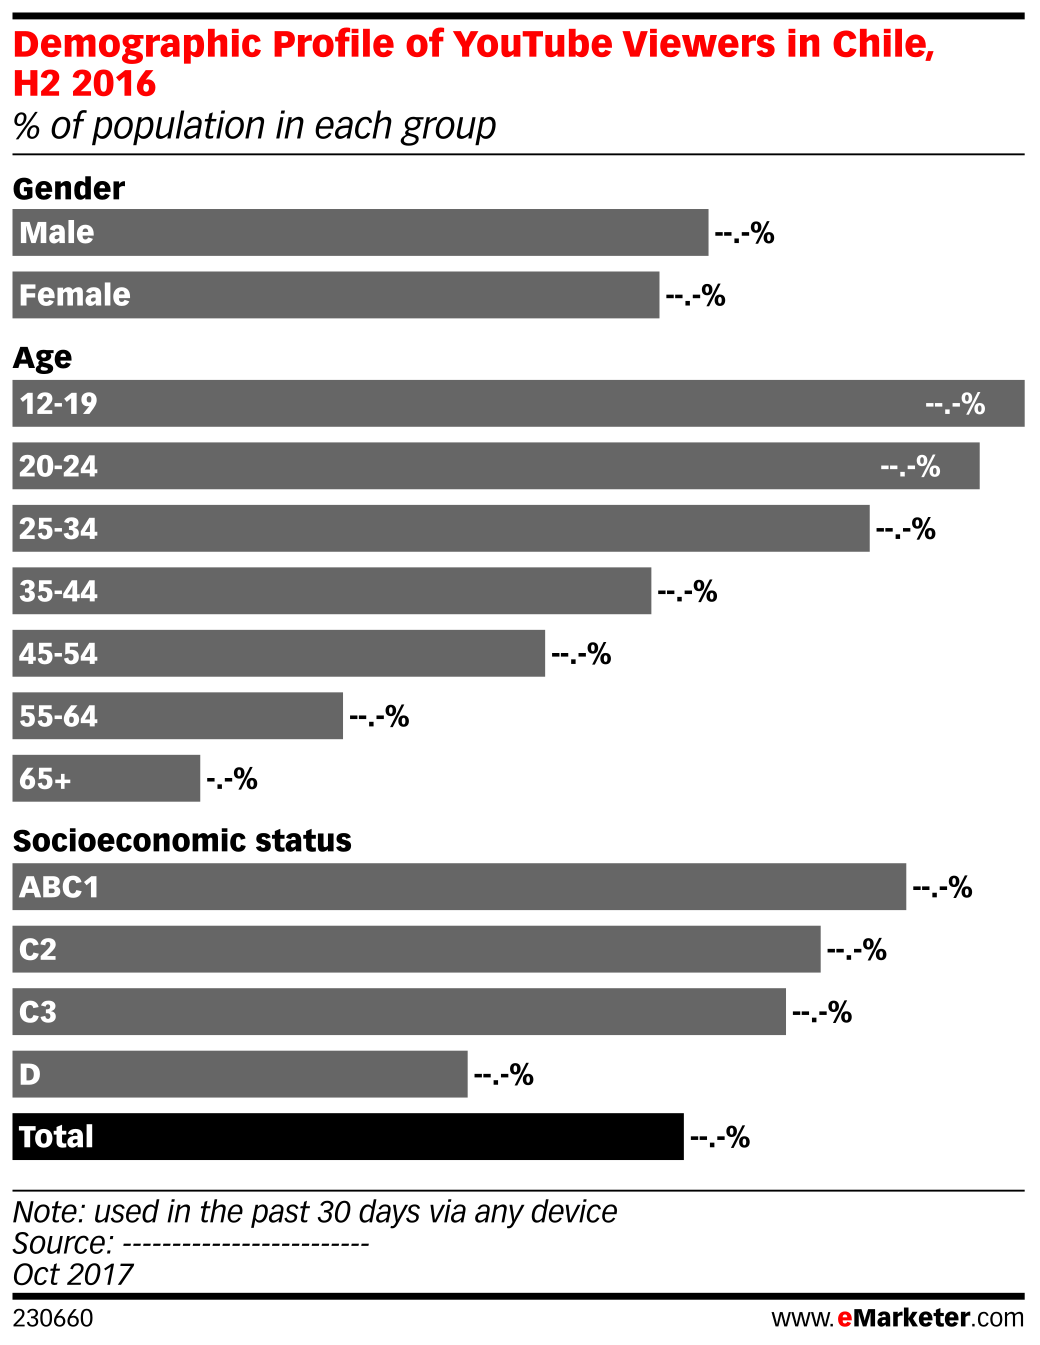 Demographic Profile of YouTube Viewers in Chile, H2 2016 (% of population in each group)